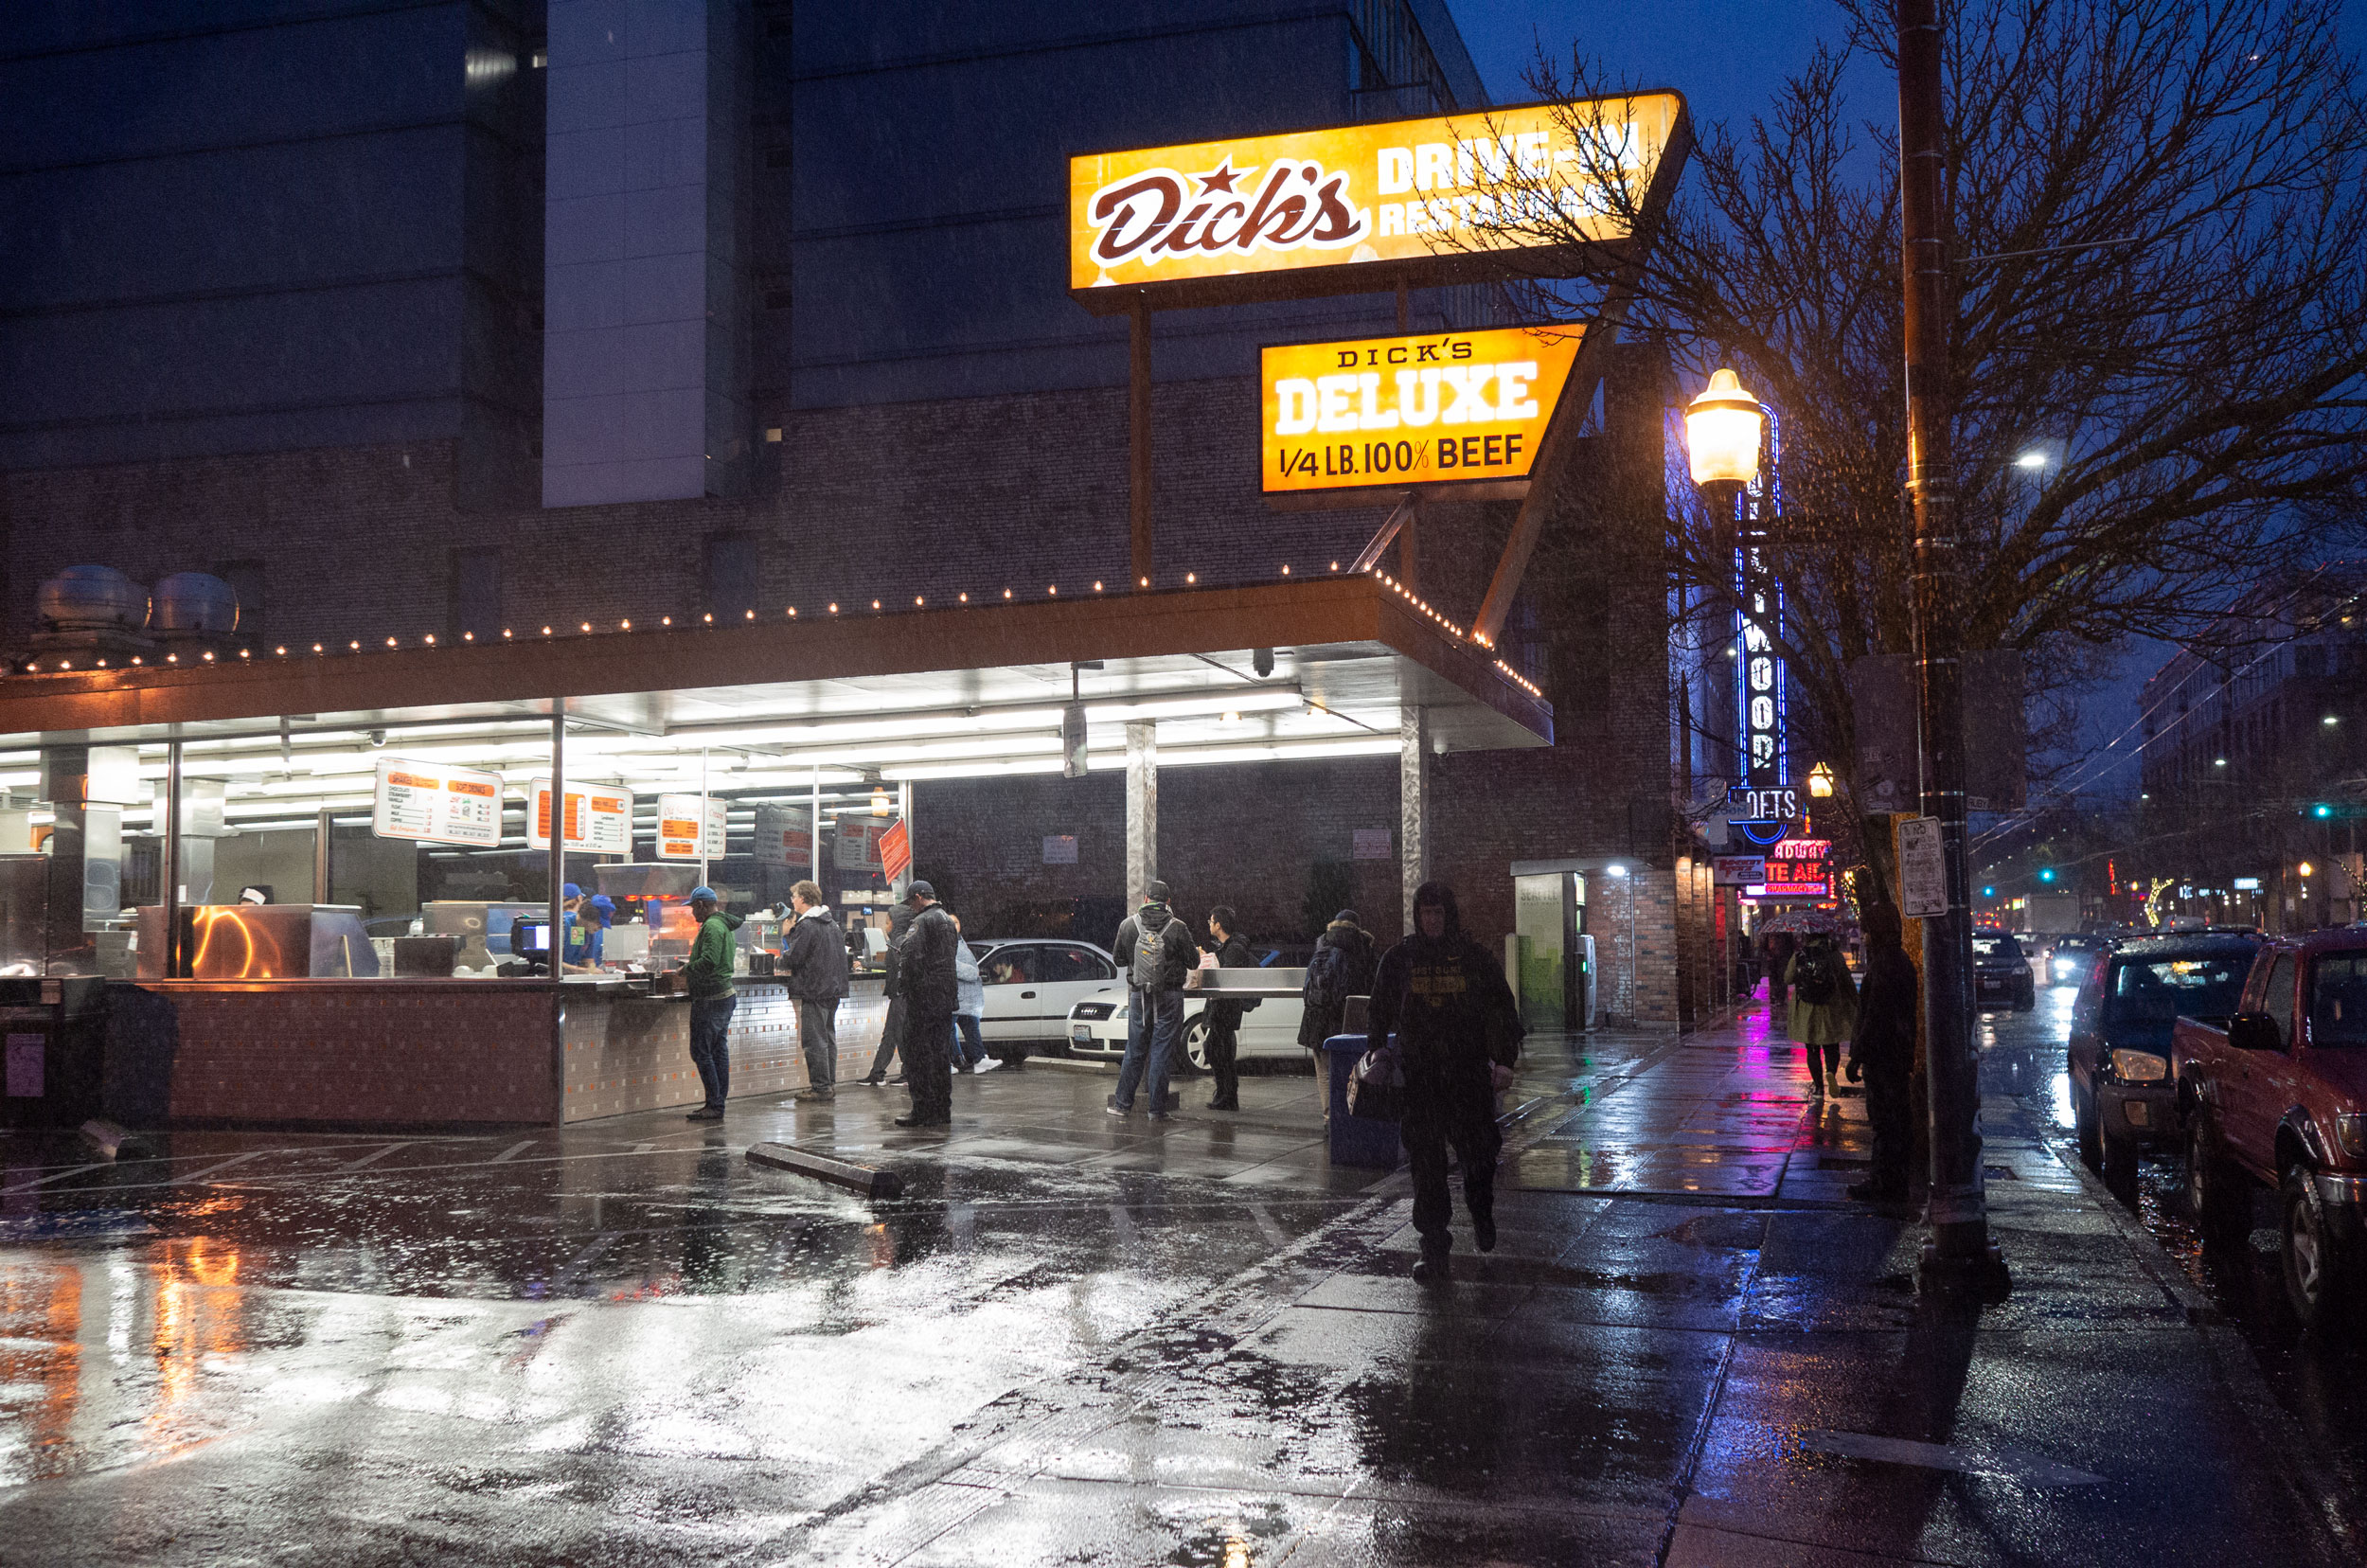 Rainy night at Dick's Drive-In